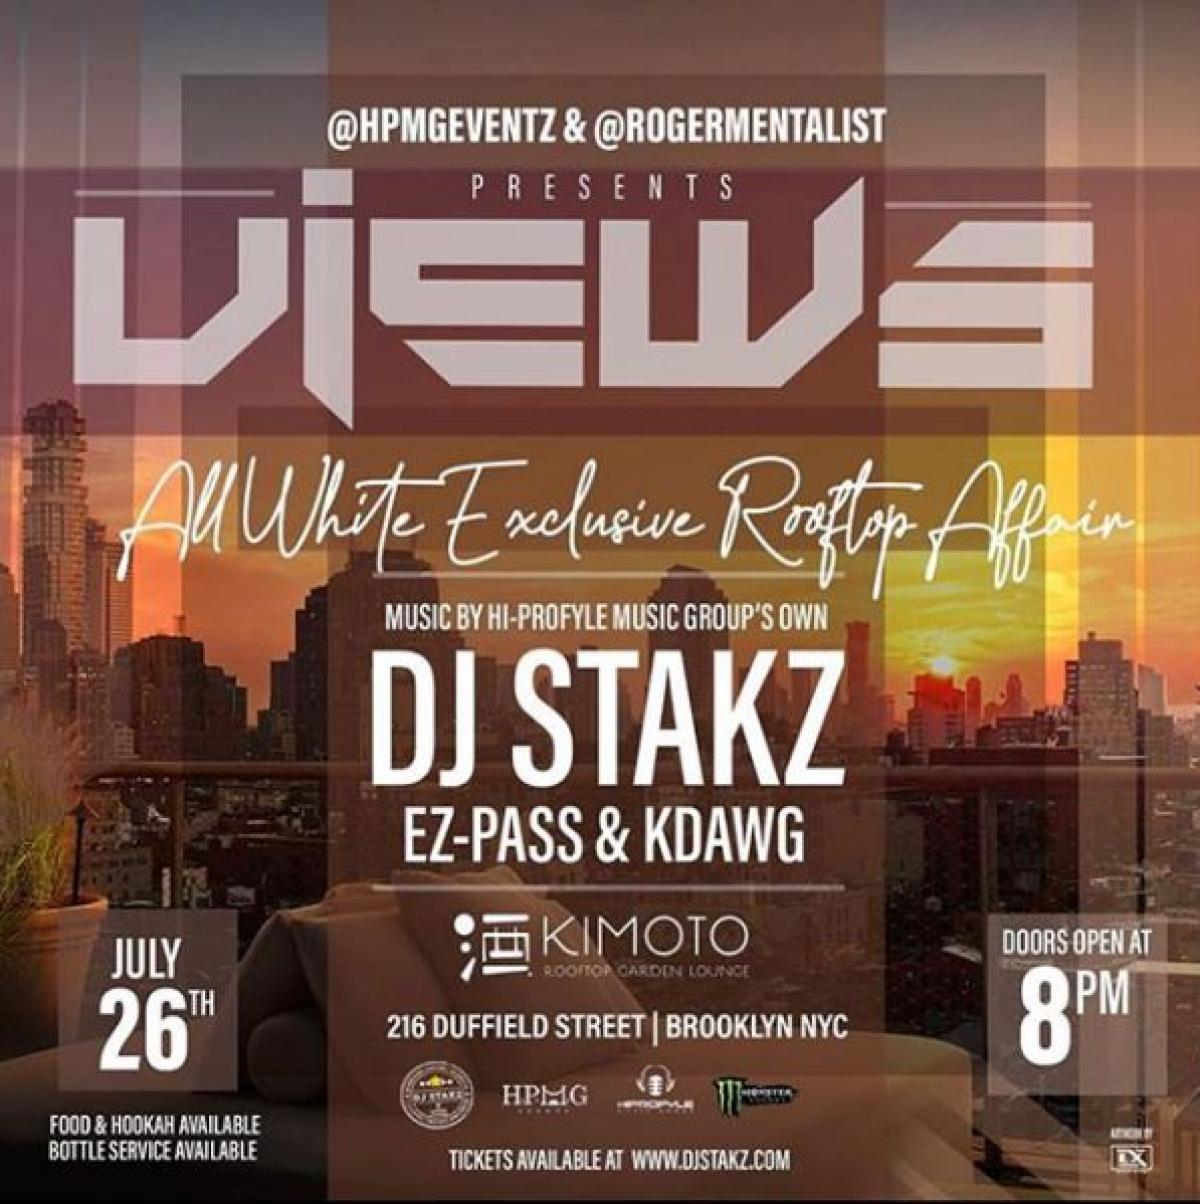 Views All White Rooftop Affair flyer or graphic.